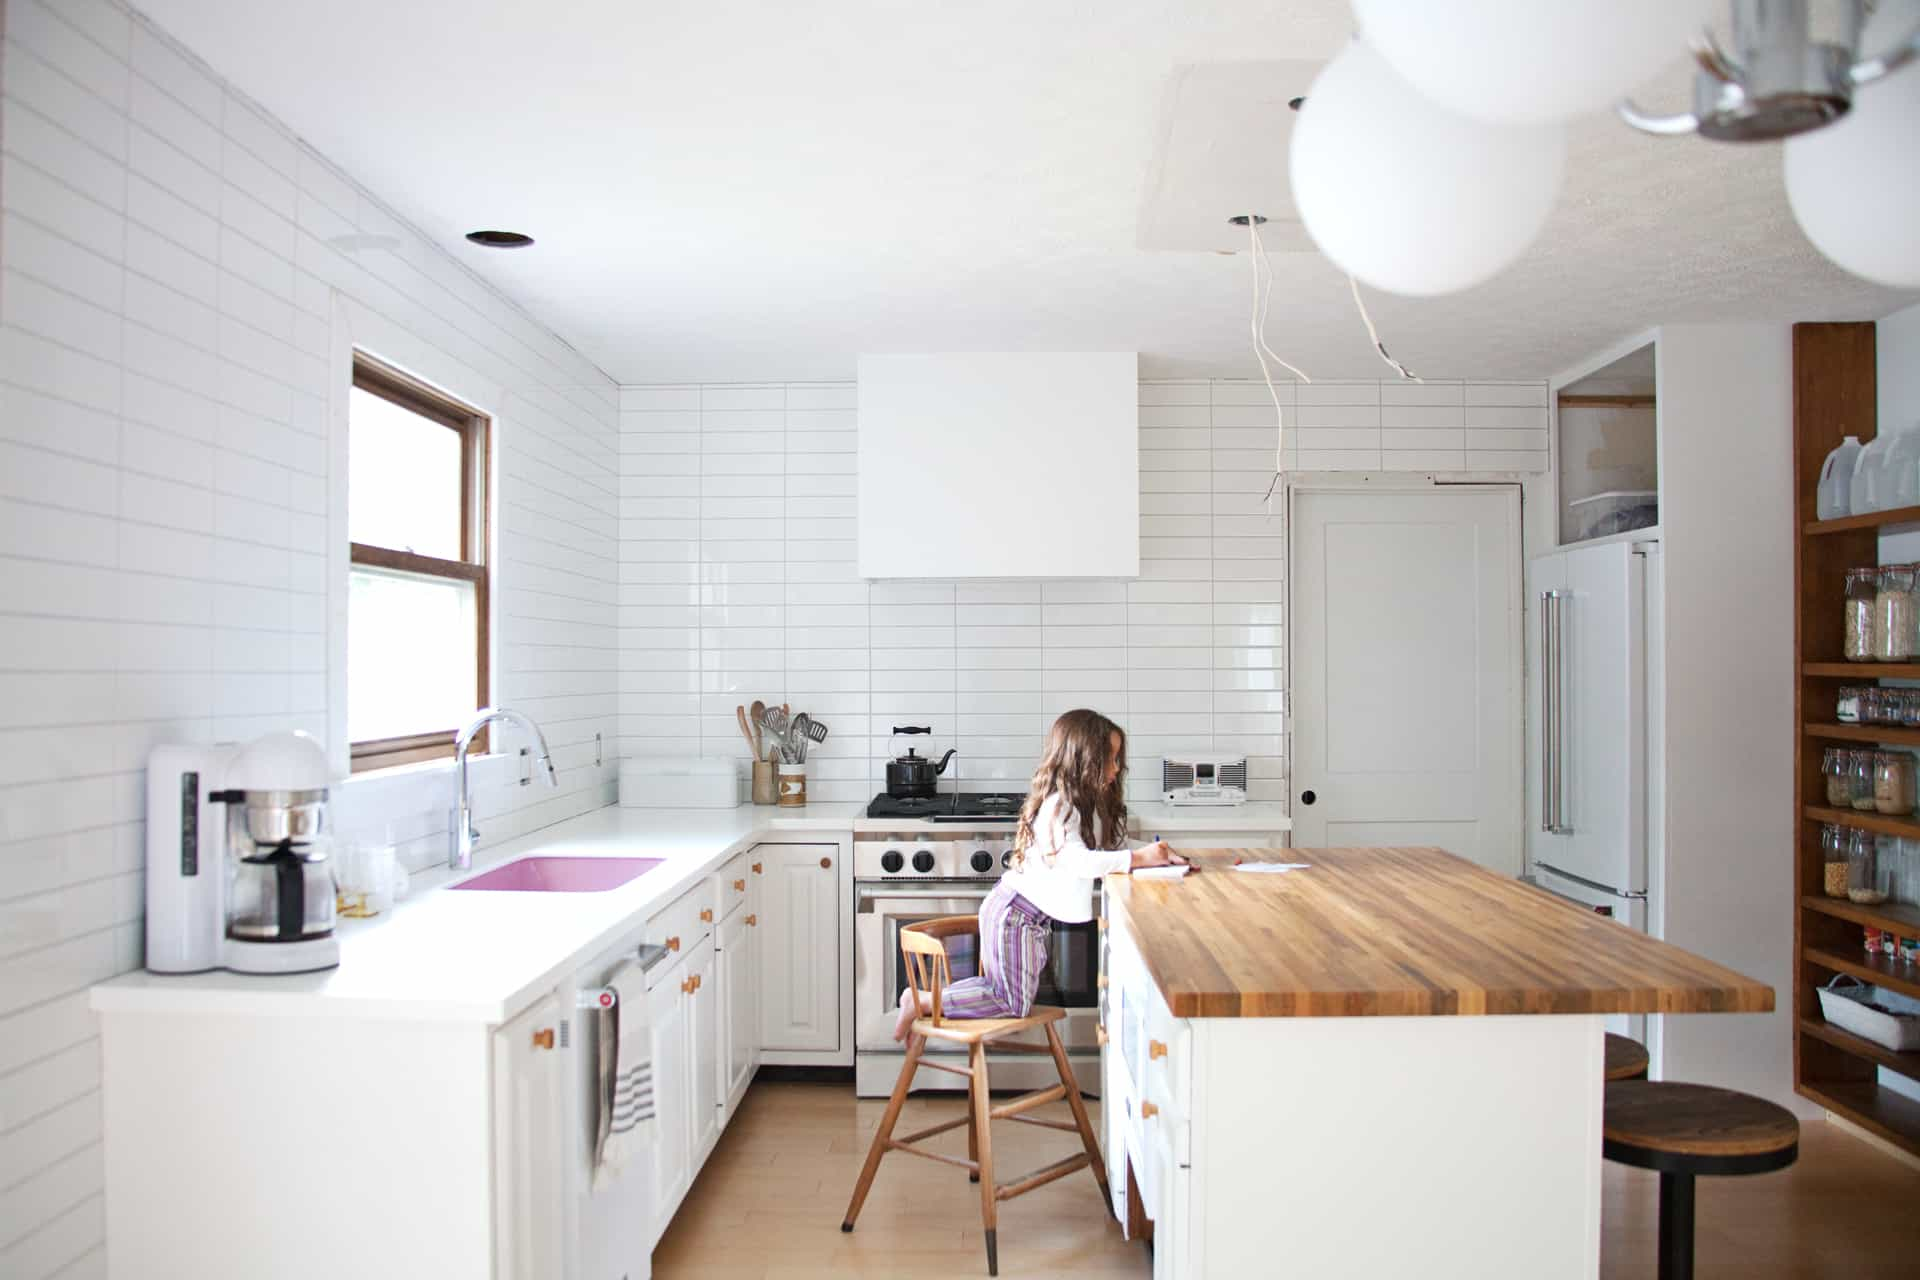 The pros and cons of remodeling your kitchen